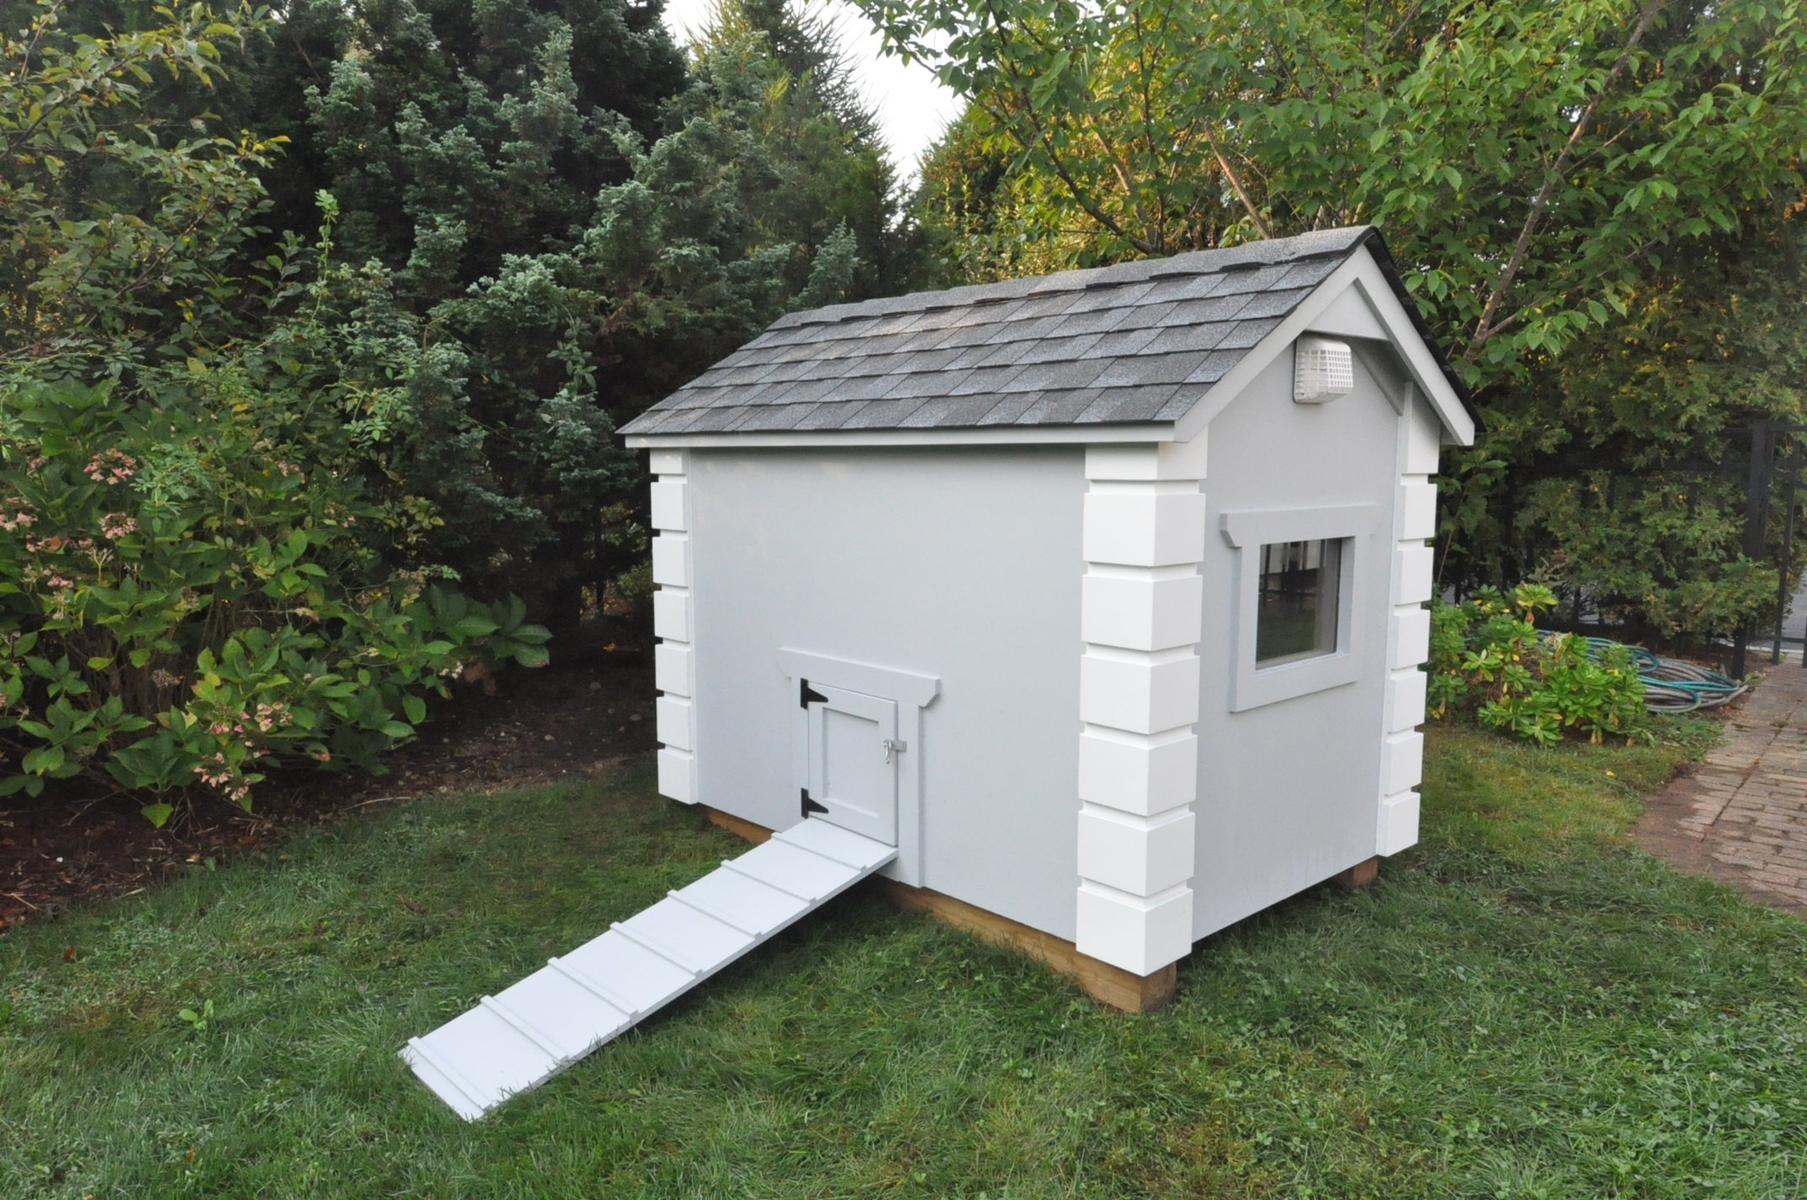 Luxury Dog Houses Pleasing With Custom Dog Furniture: Doghouses, Beds, Gates, and Crates  Made by  Photos